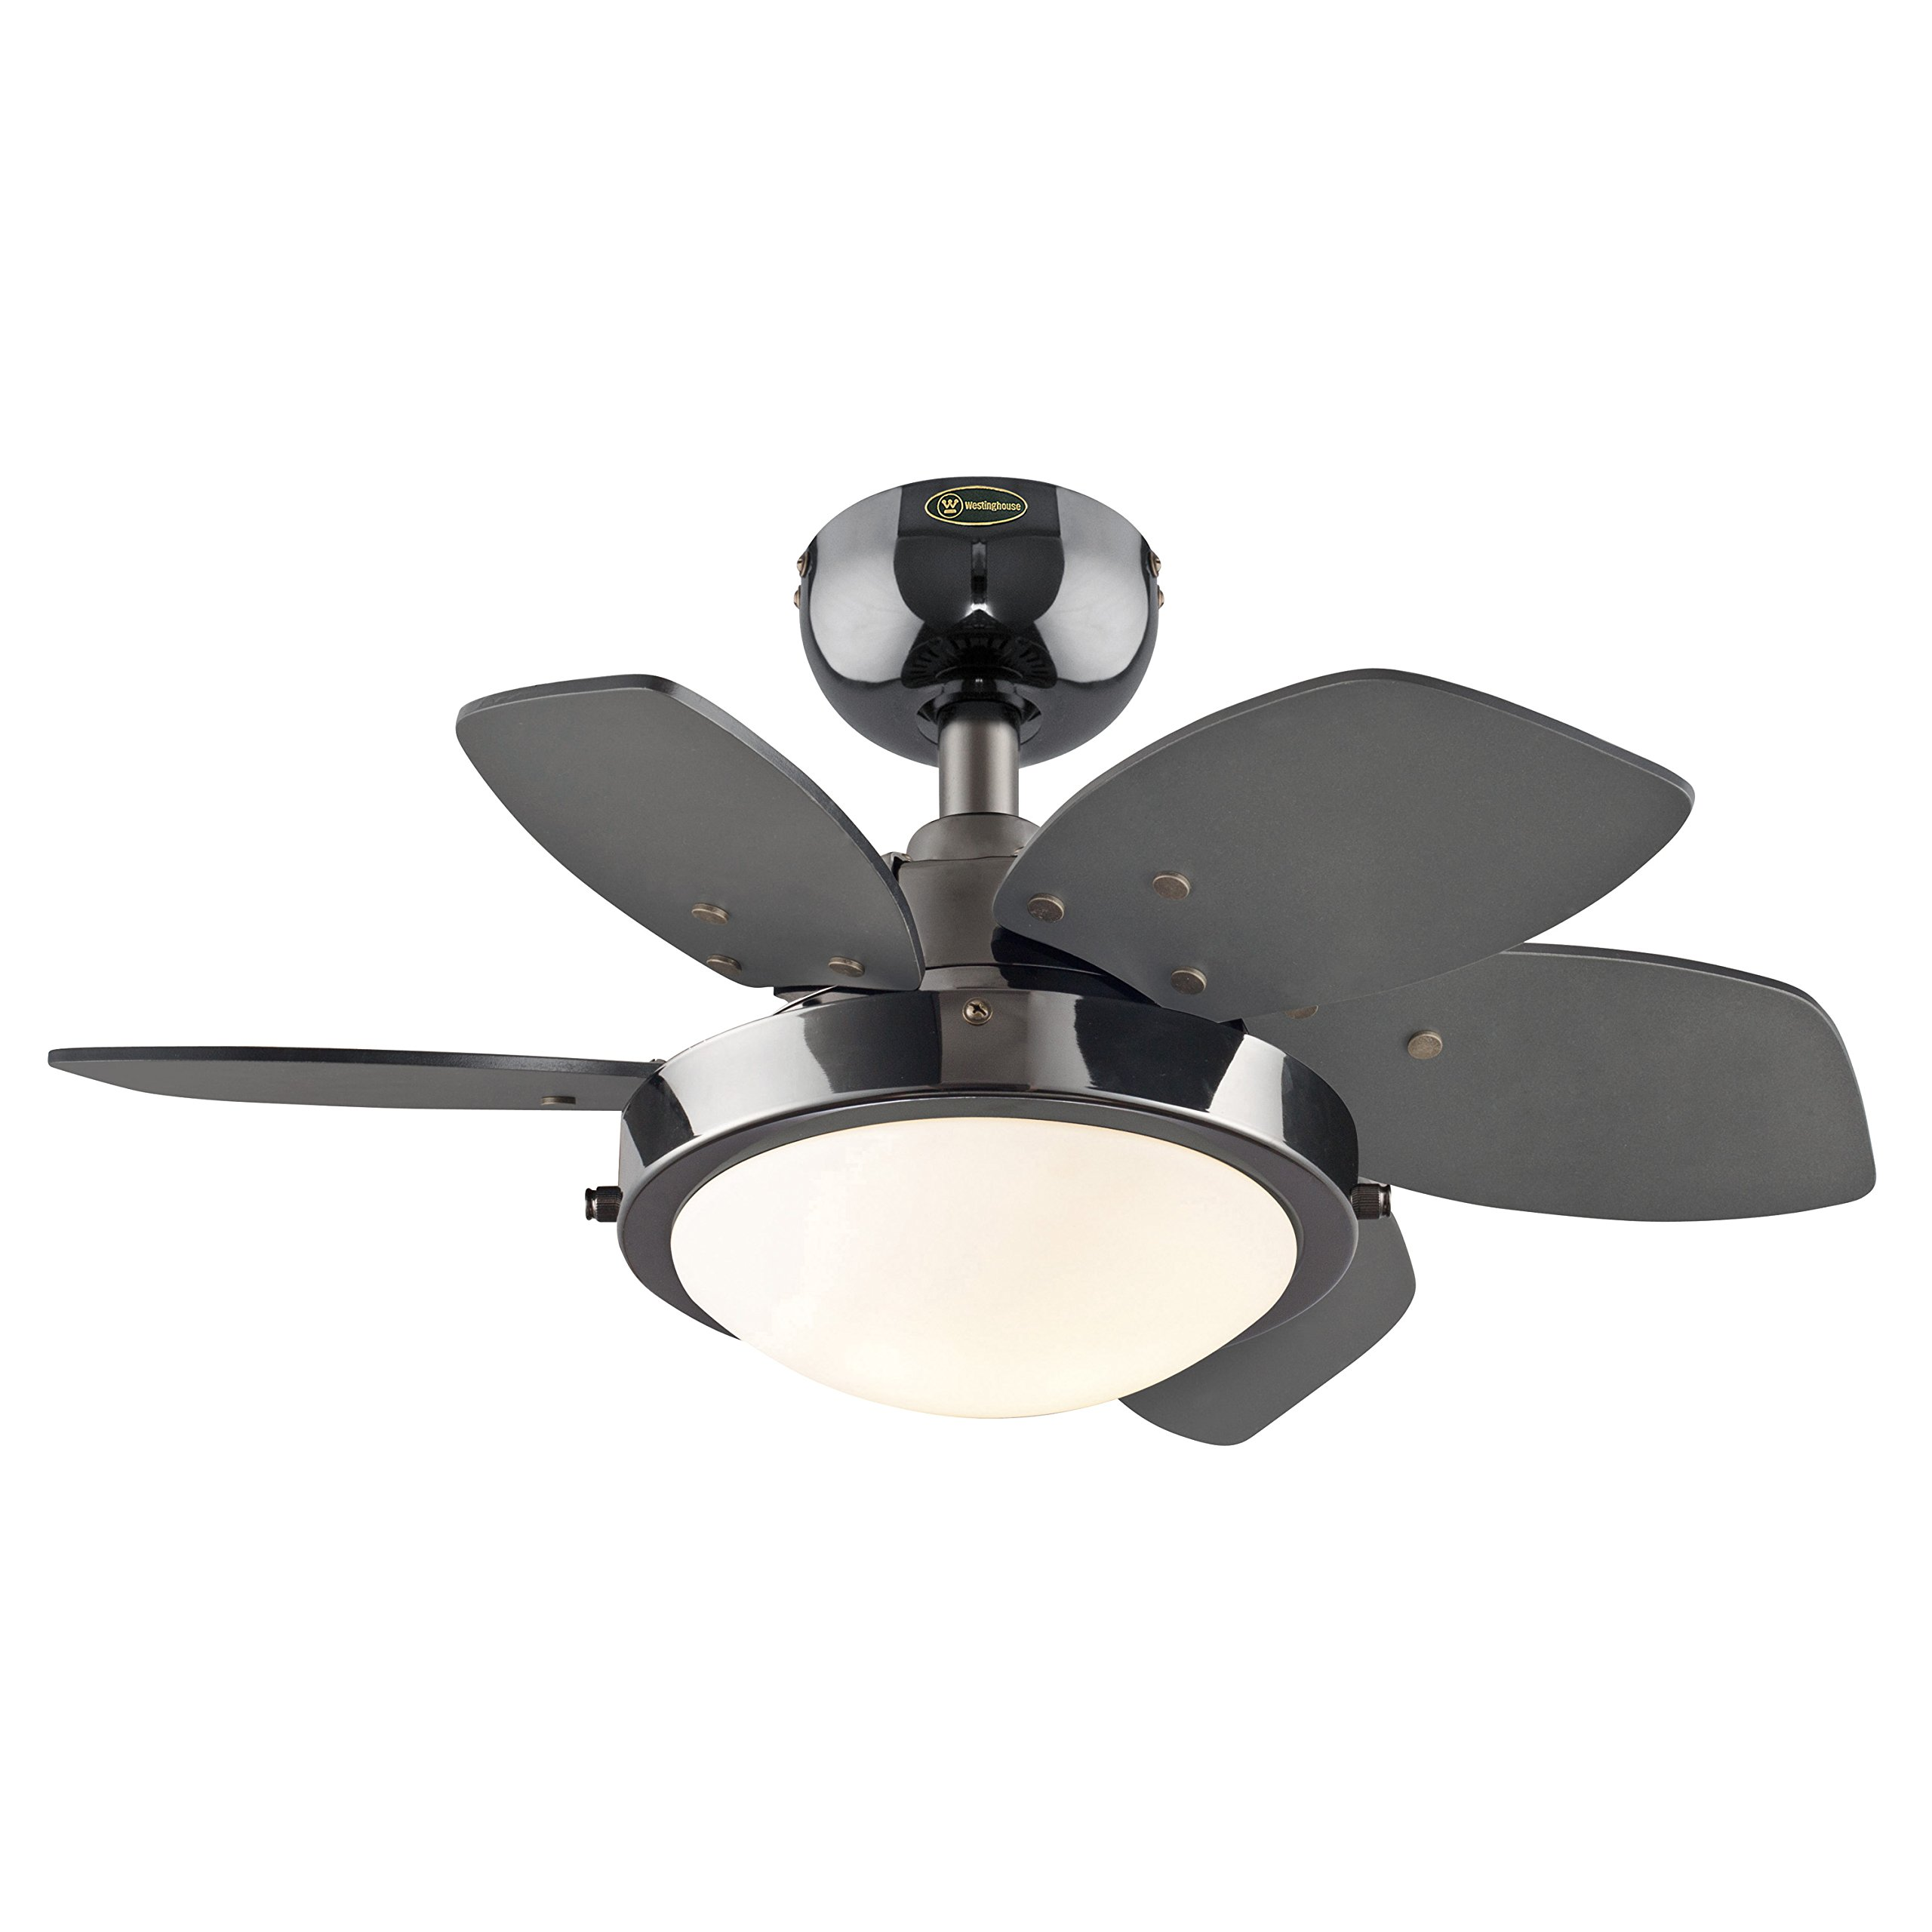 Image Result For Small Ceiling Fans Without Lights